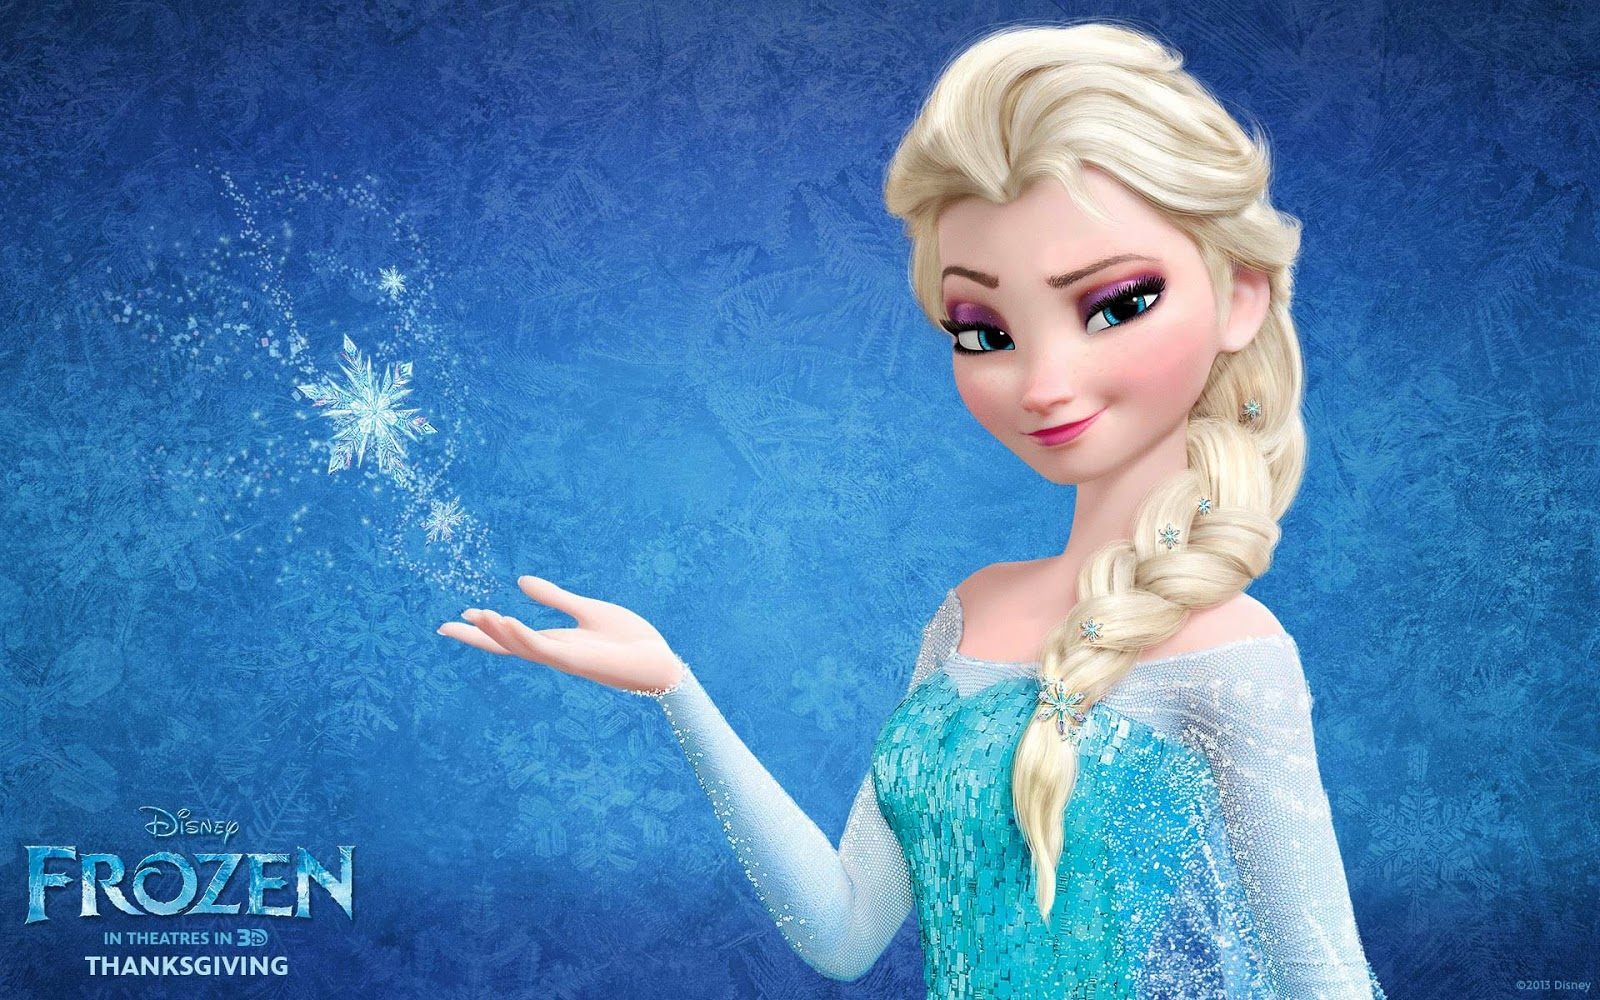 Collection of Frozen Wallpaper Hd on HDWallpapers 1600x1000